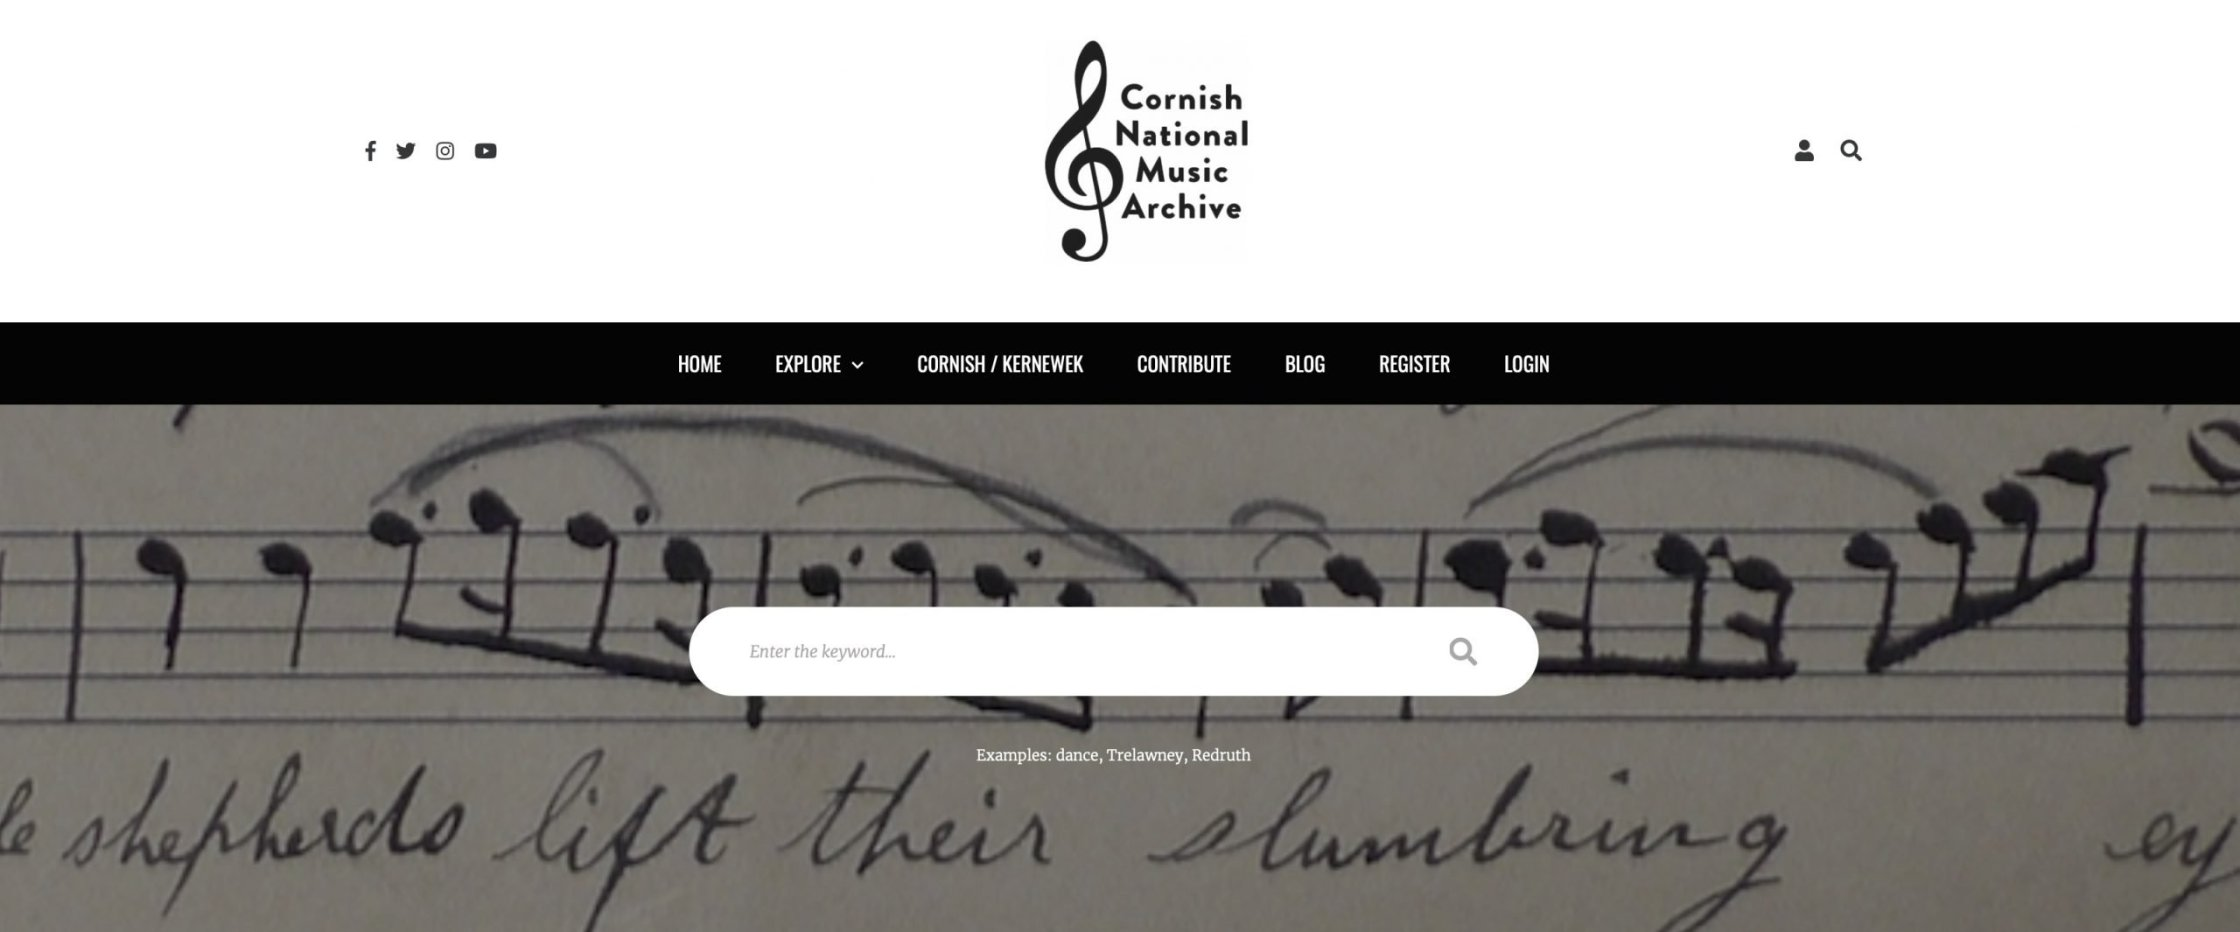 Screenshot of the Cornish National Music Archive website header